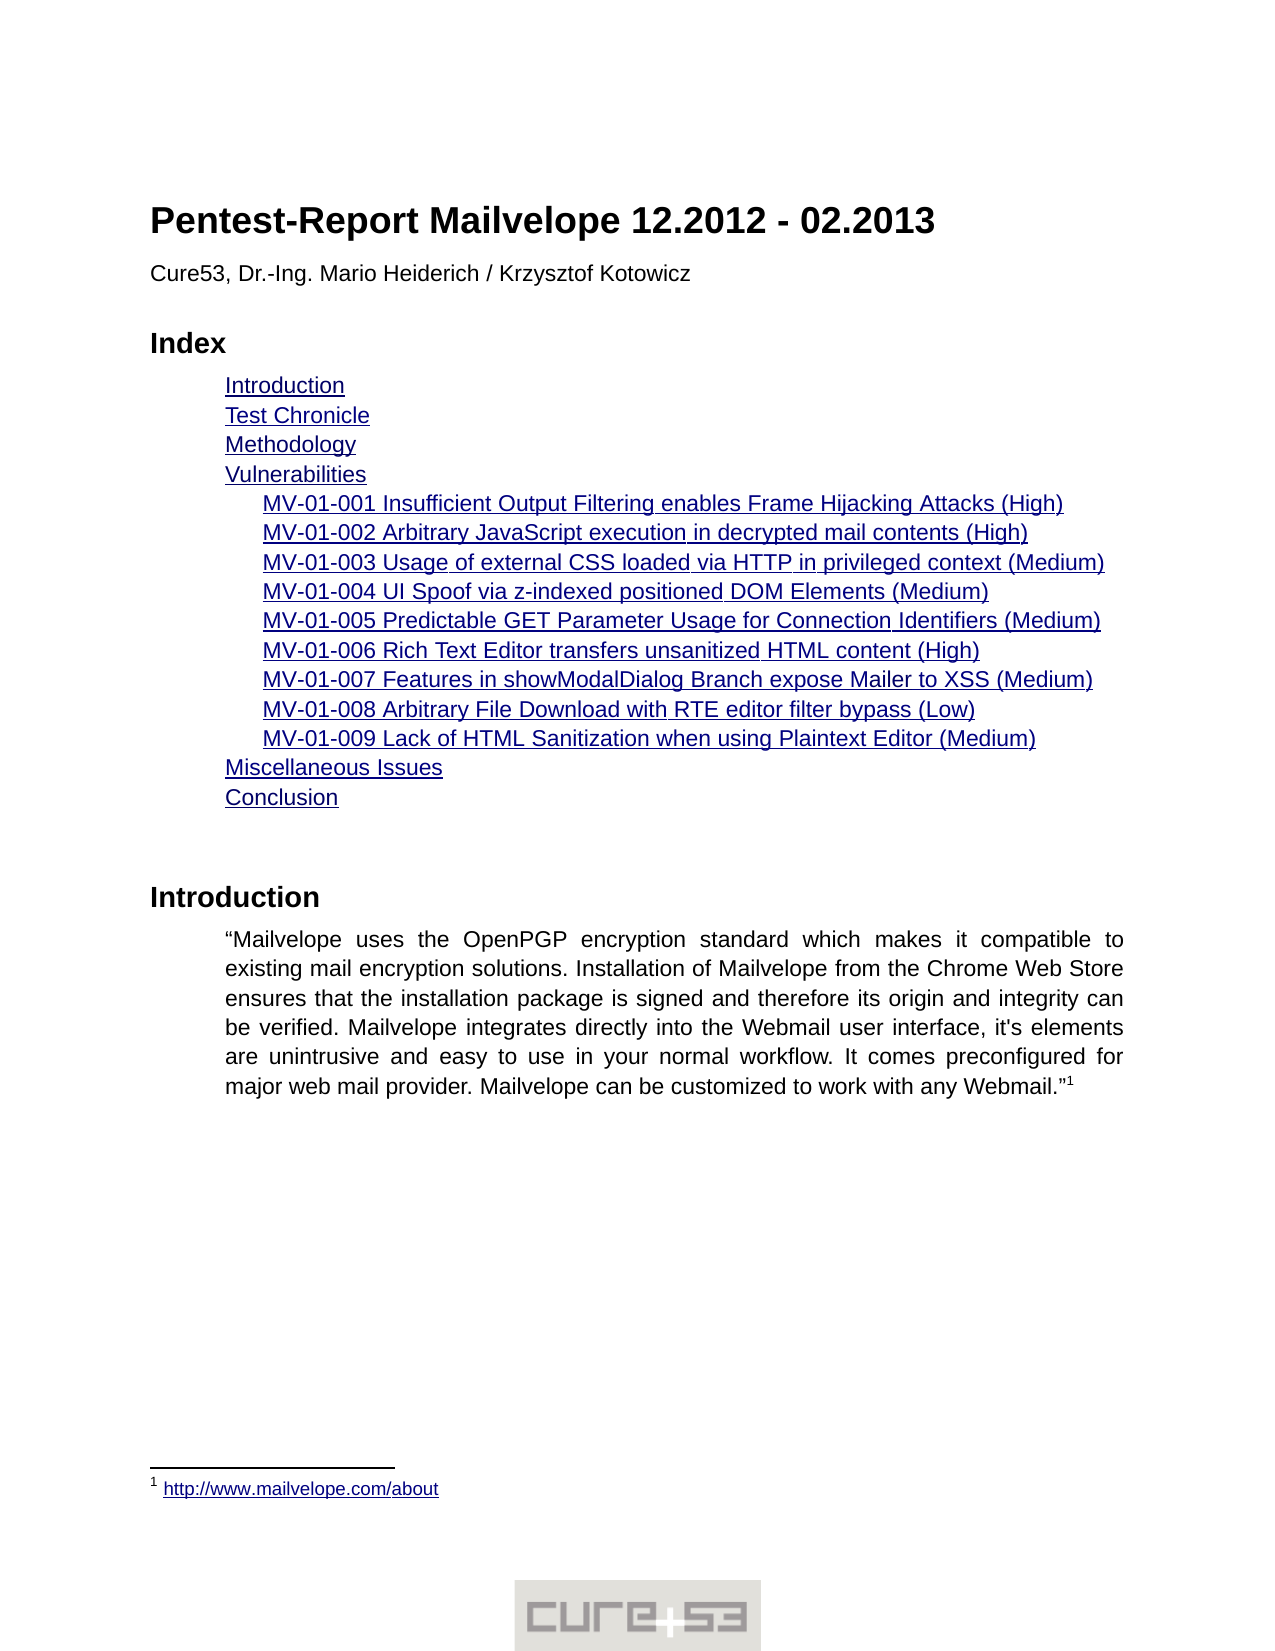 First page of the 'pentest-report mailvelope' PDF